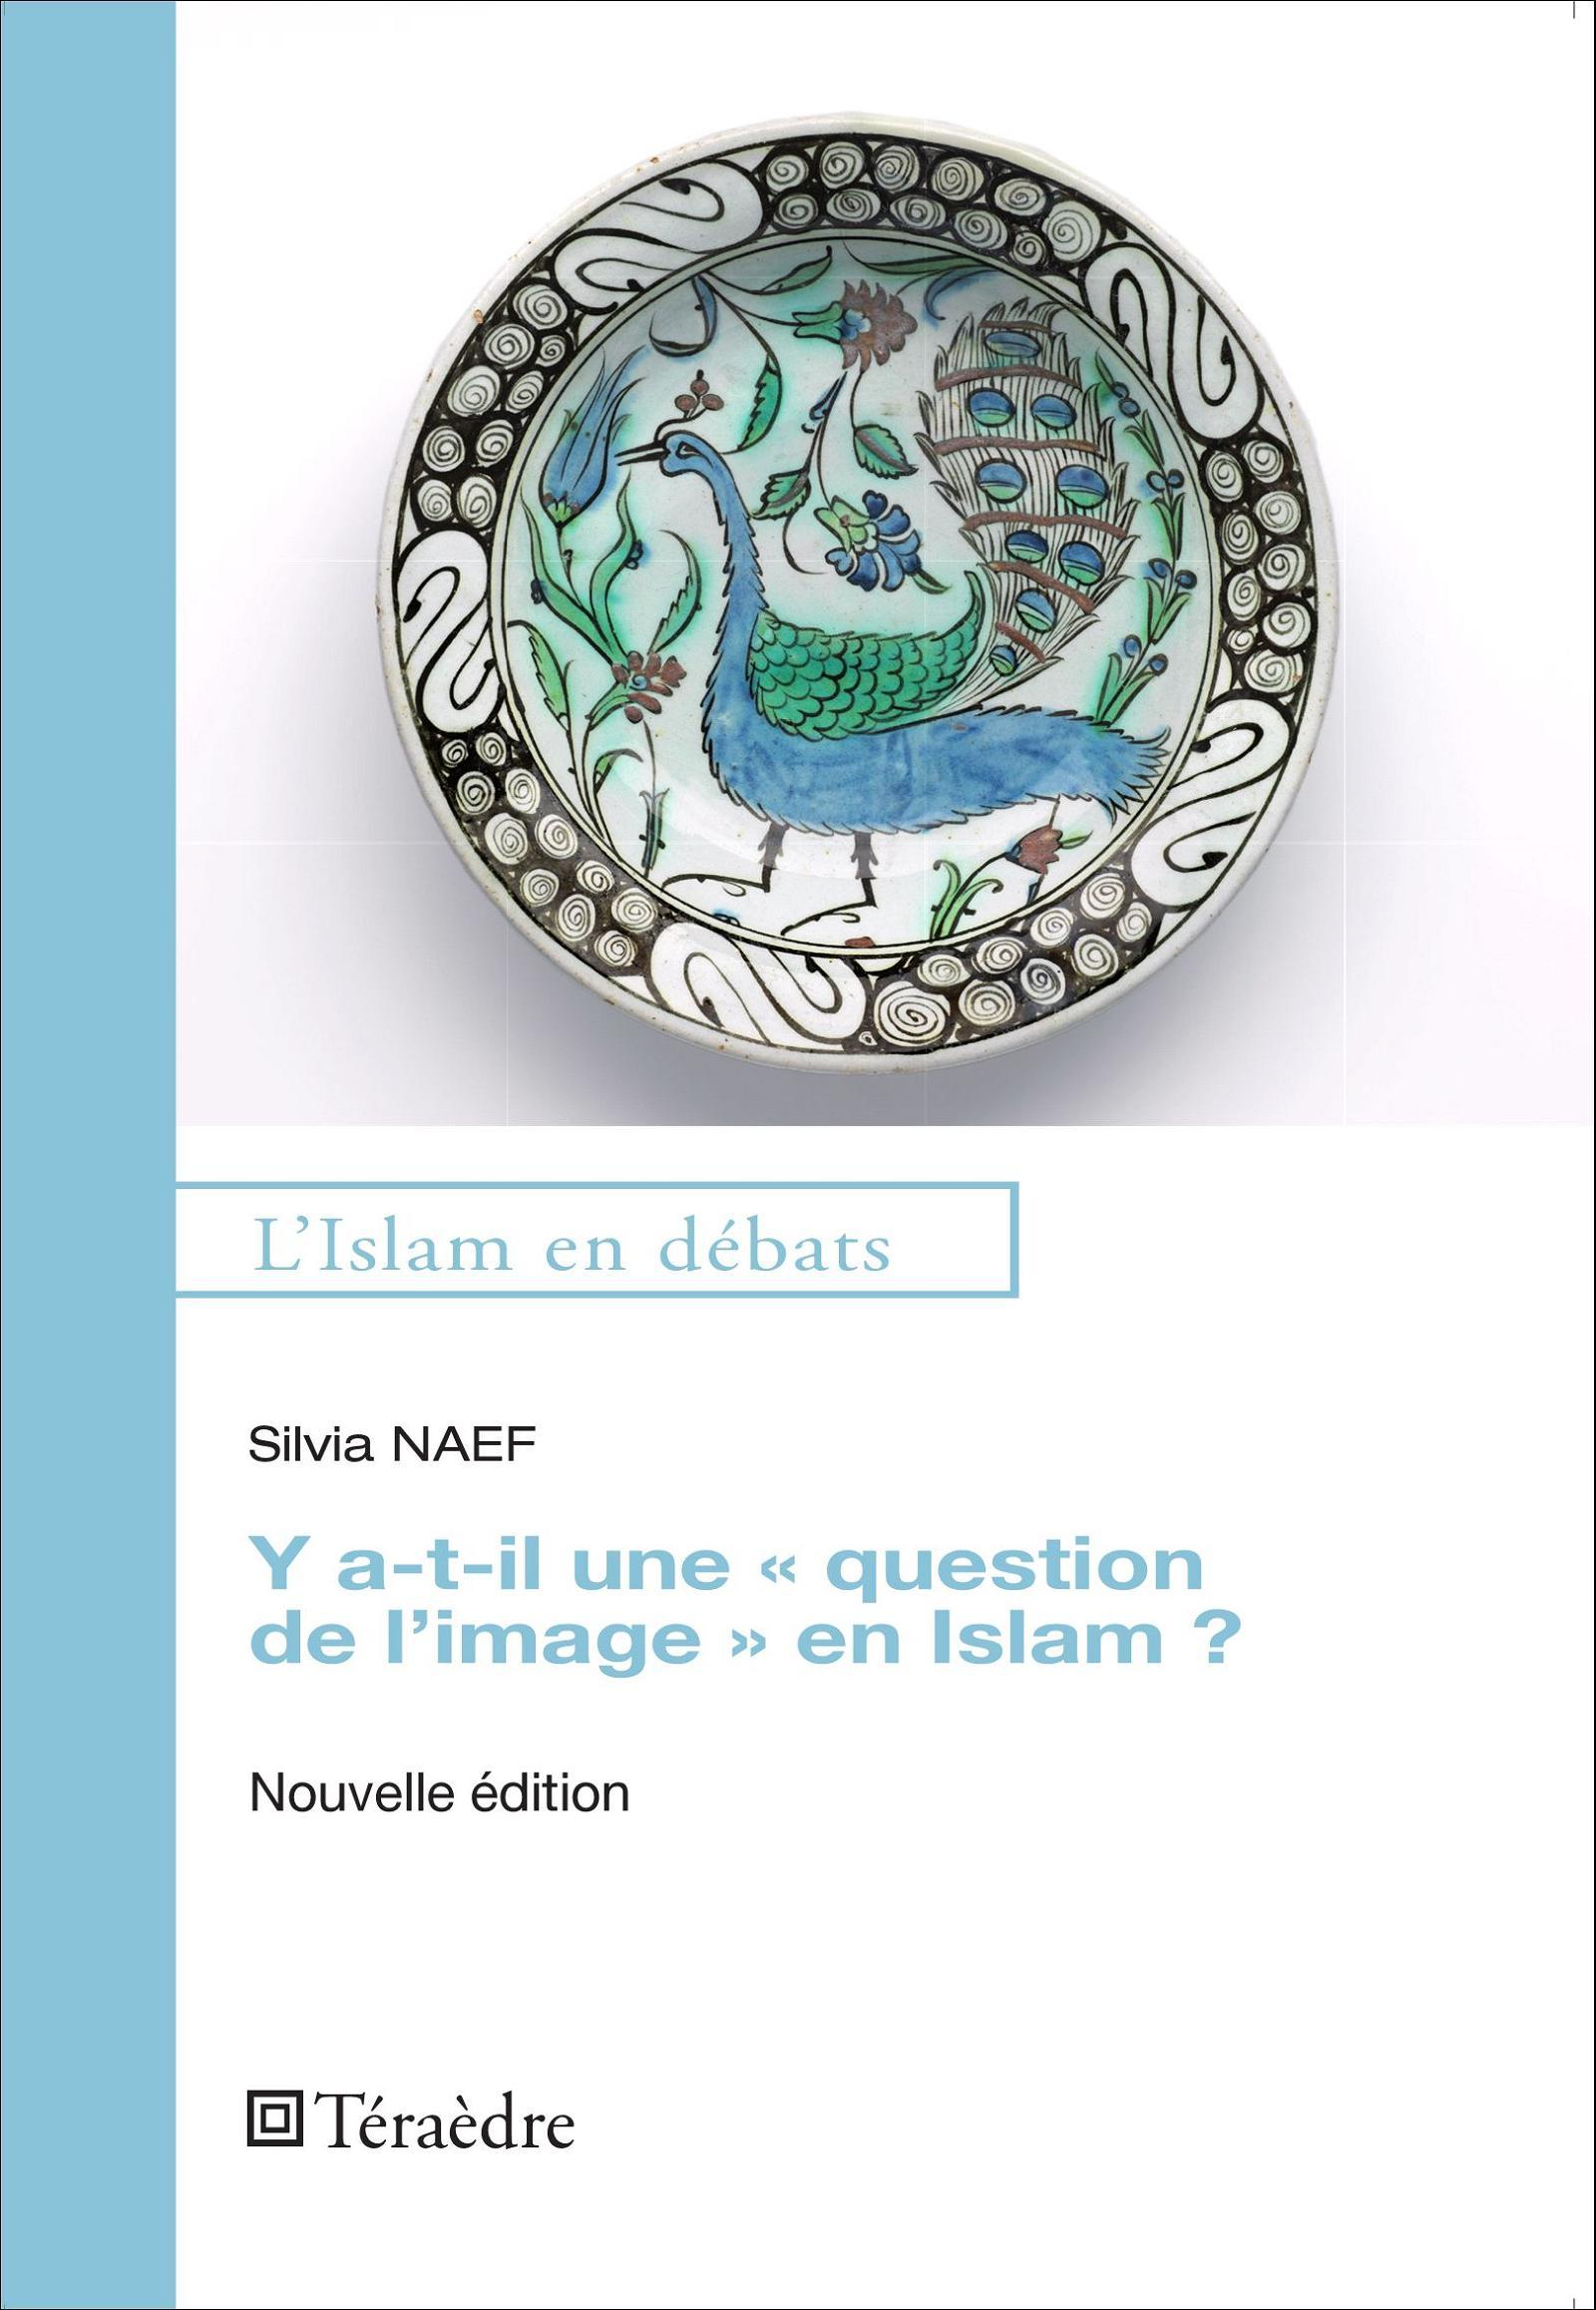 Y A T IL (NLLE EDITION) UNE QUESTION DE L'IMAGE EN ISLAM